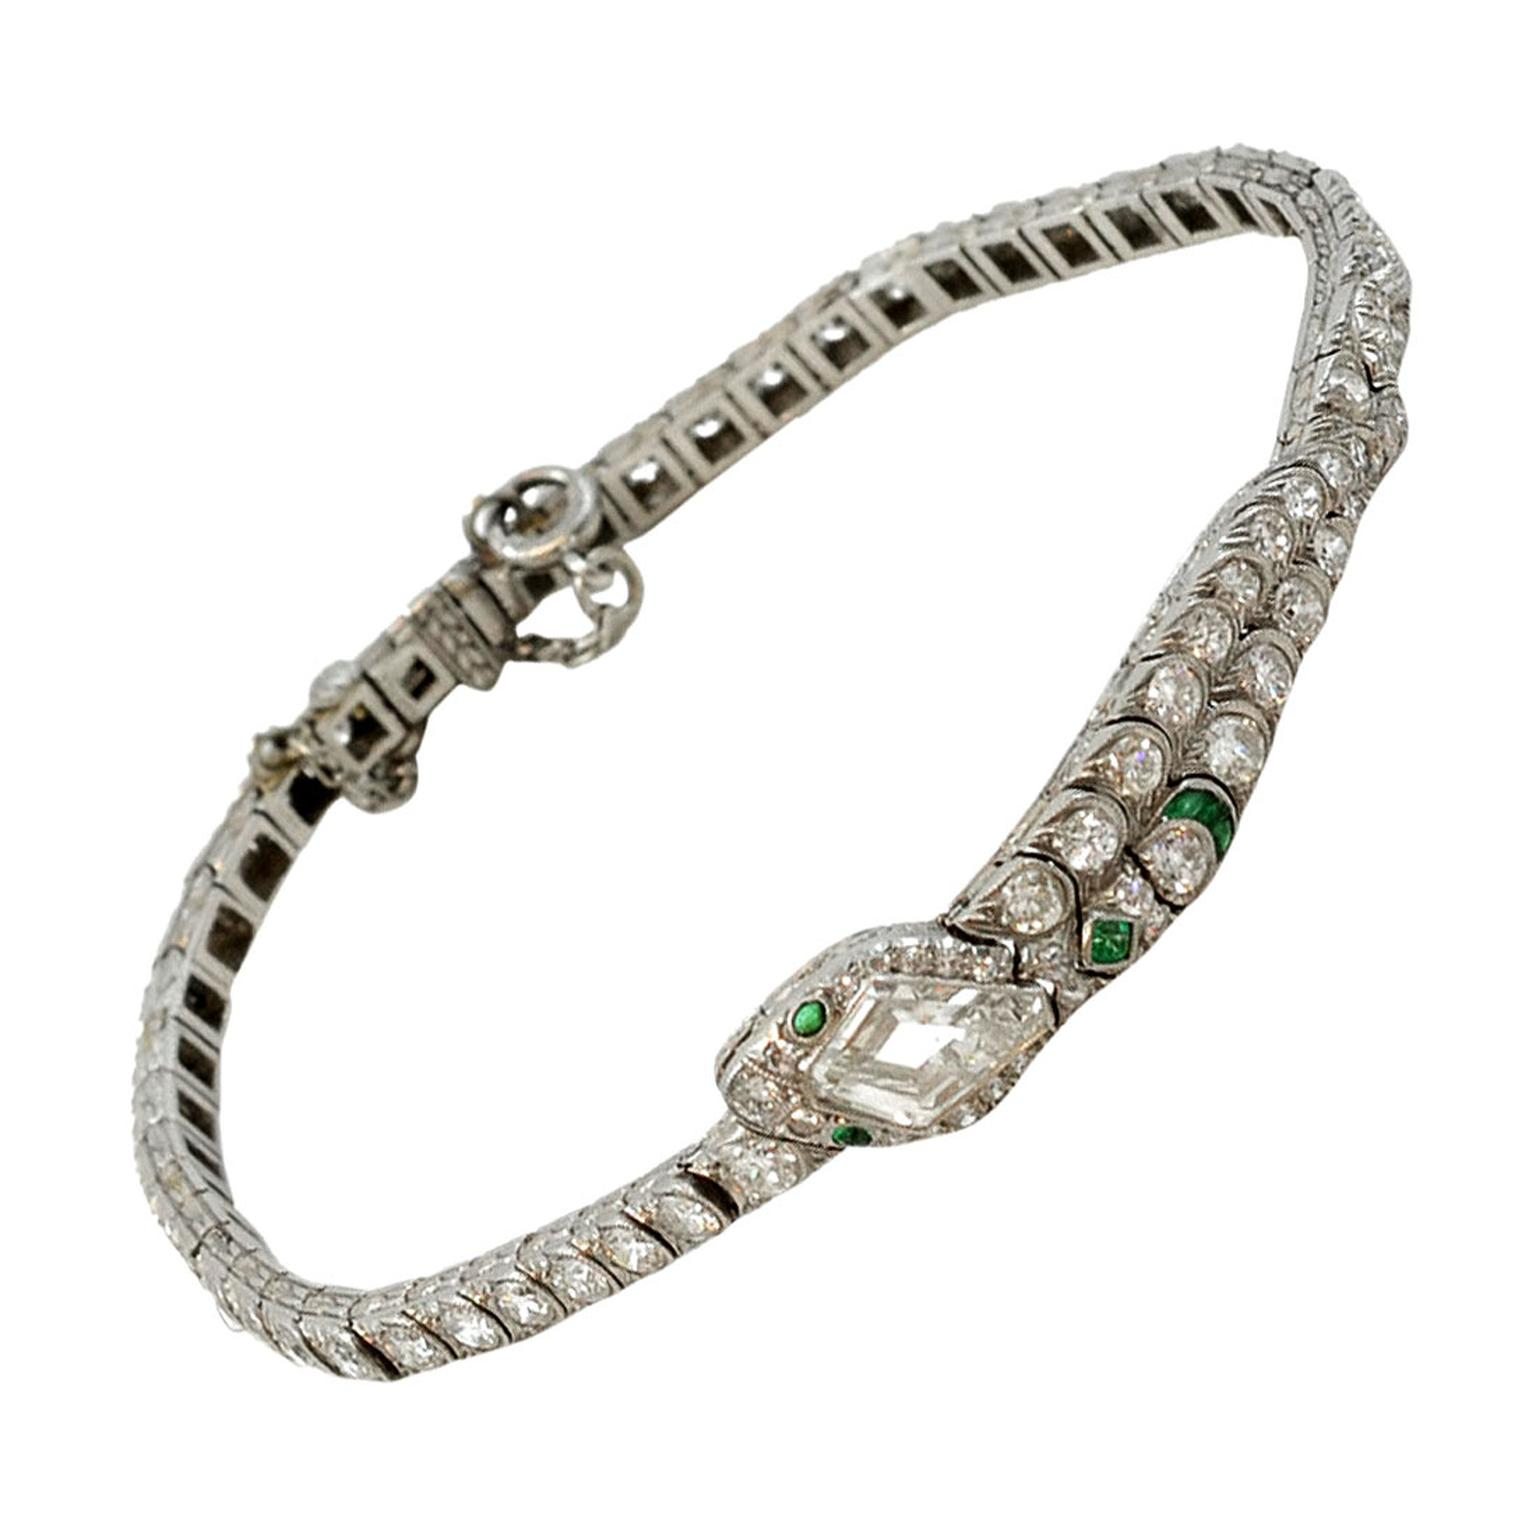 Sandra Cronan Belle Epoque diamond-set snake